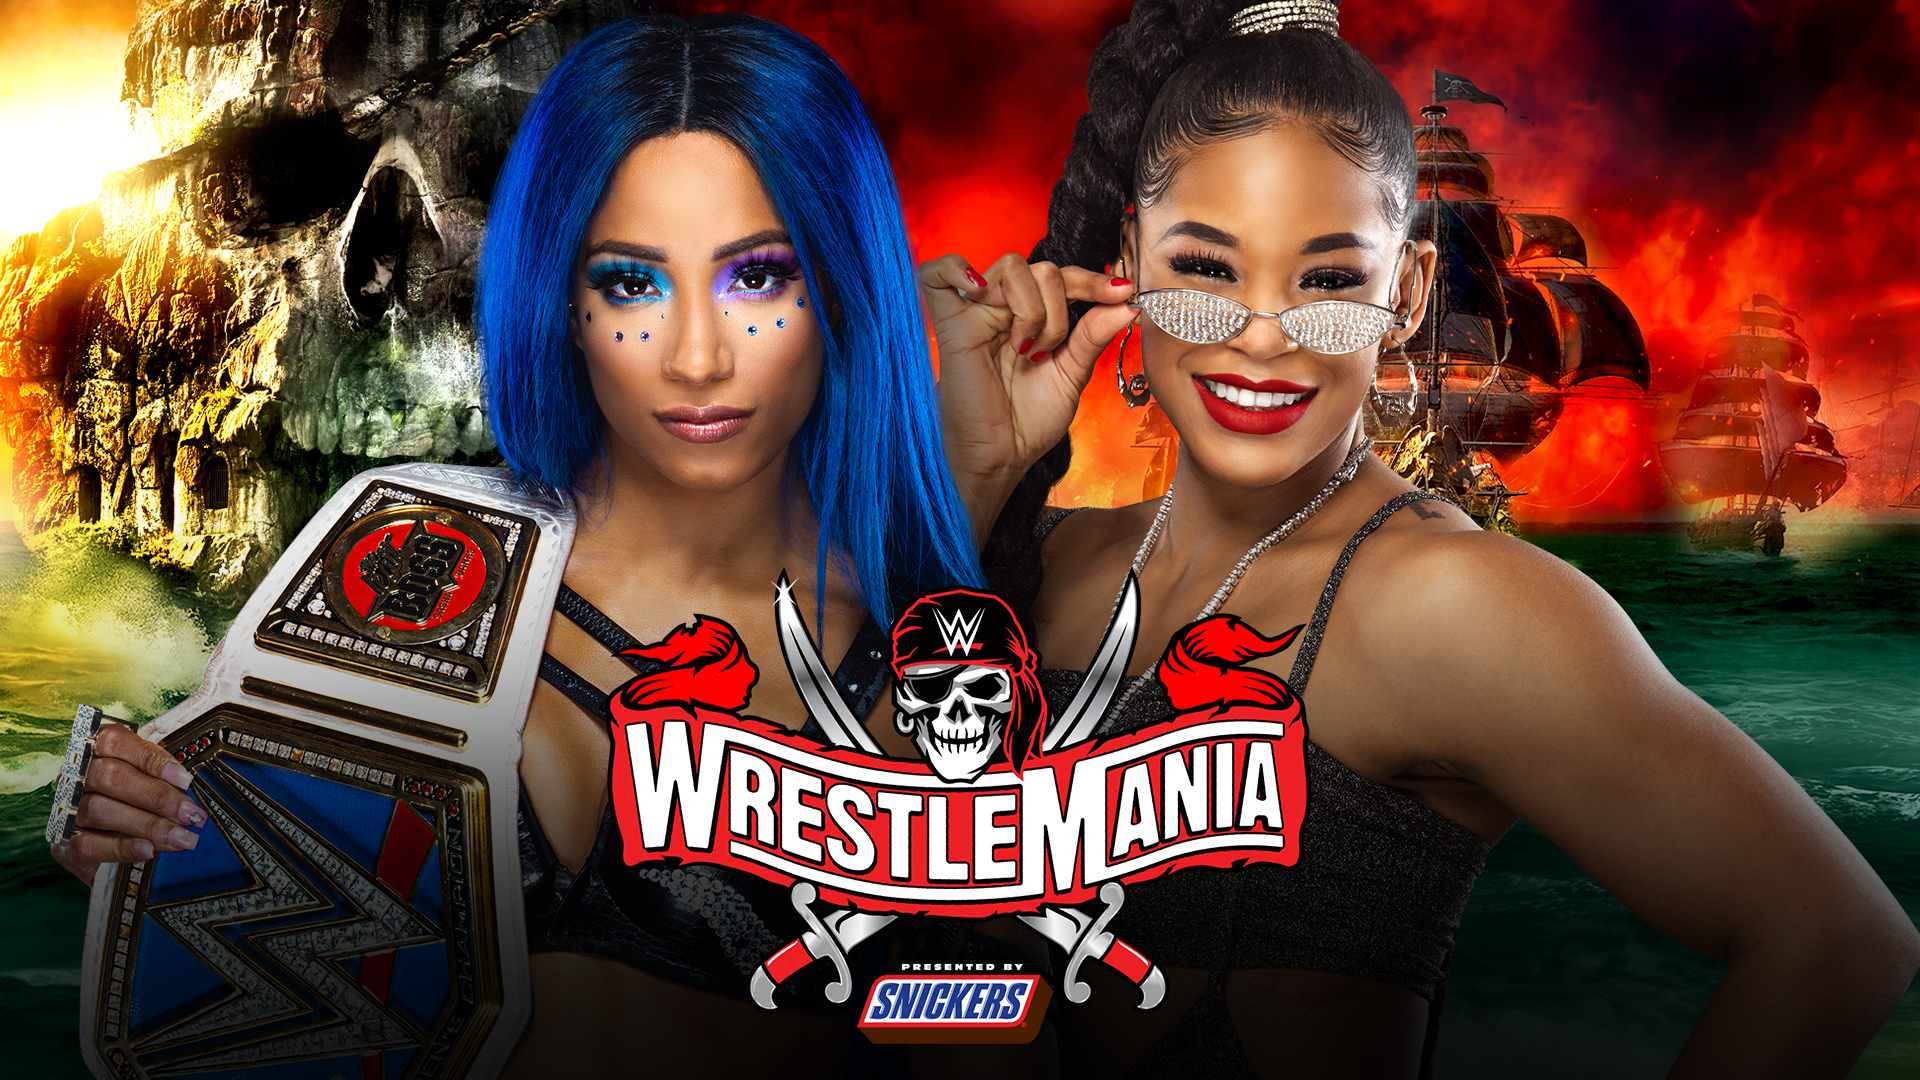 WrestleMania 37 match grades: Bianca Belair, Sahsa Banks make history in instant classic on Night 1